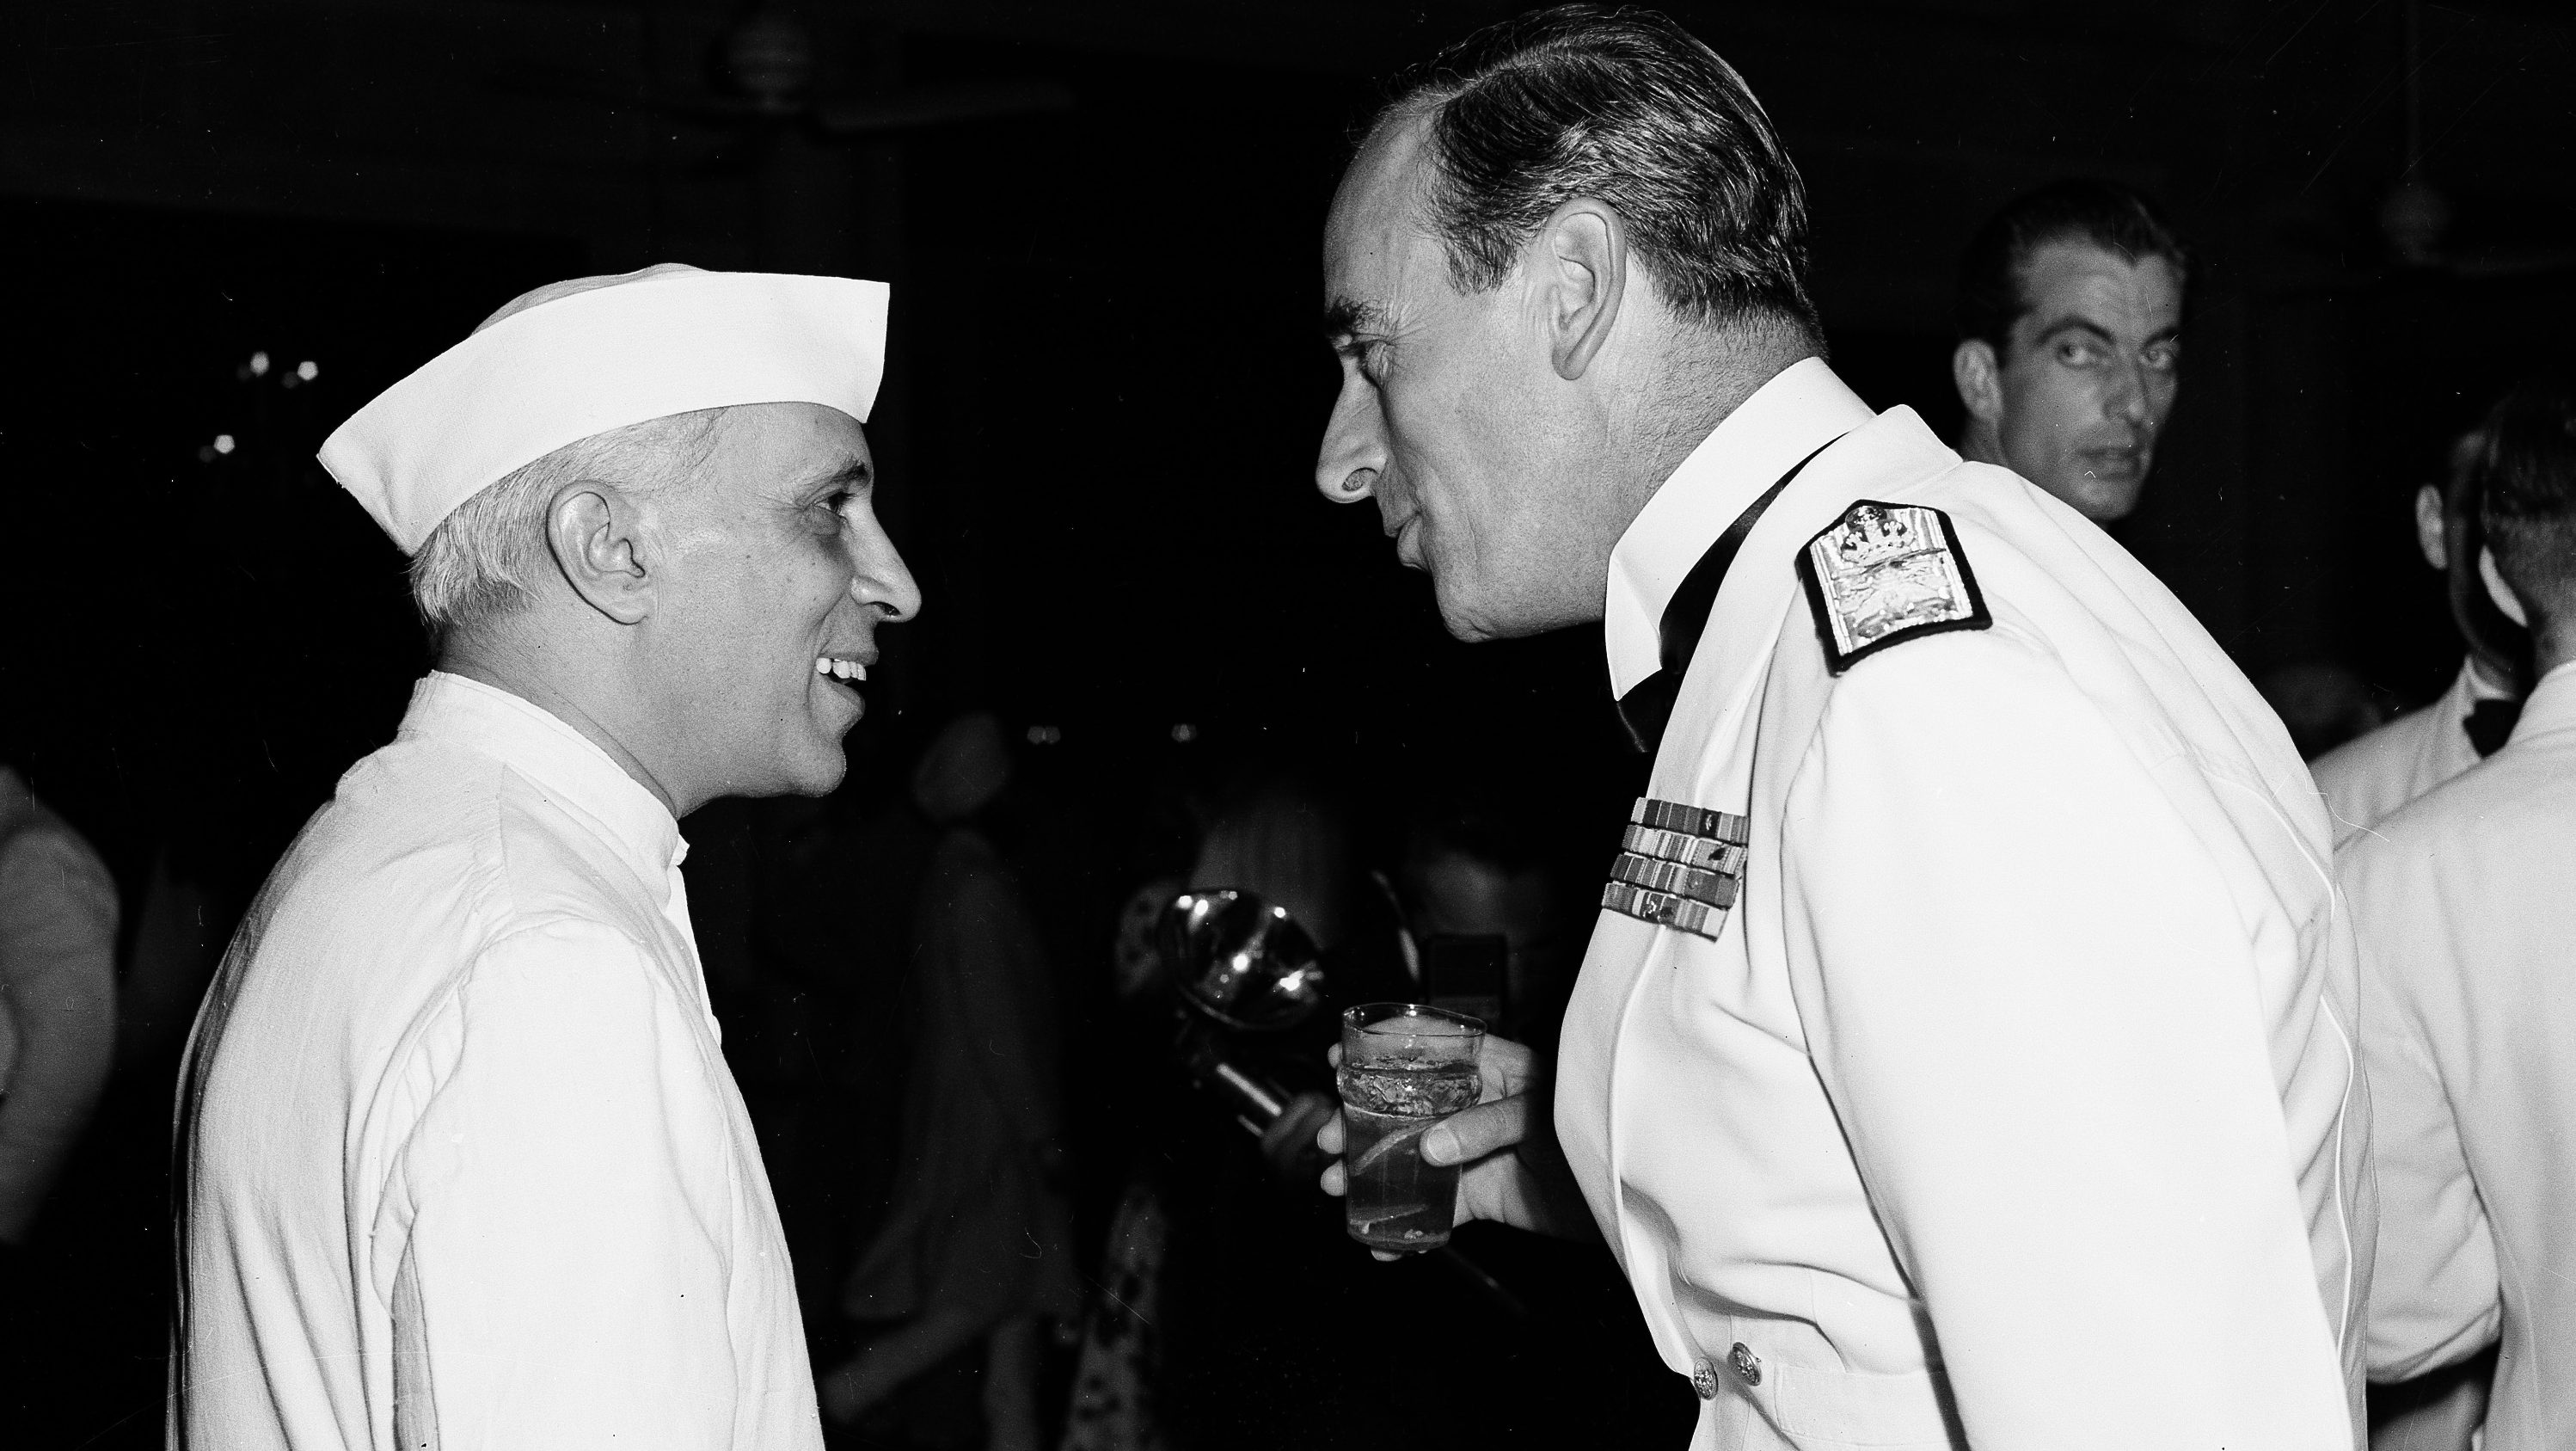 Jawaharlal Nehru, left, and British Viceroy, Lord Louis Mountbatten, are shown at the Viceroy's independence day party for Americans in New Delhi, India, July 4, 1947.